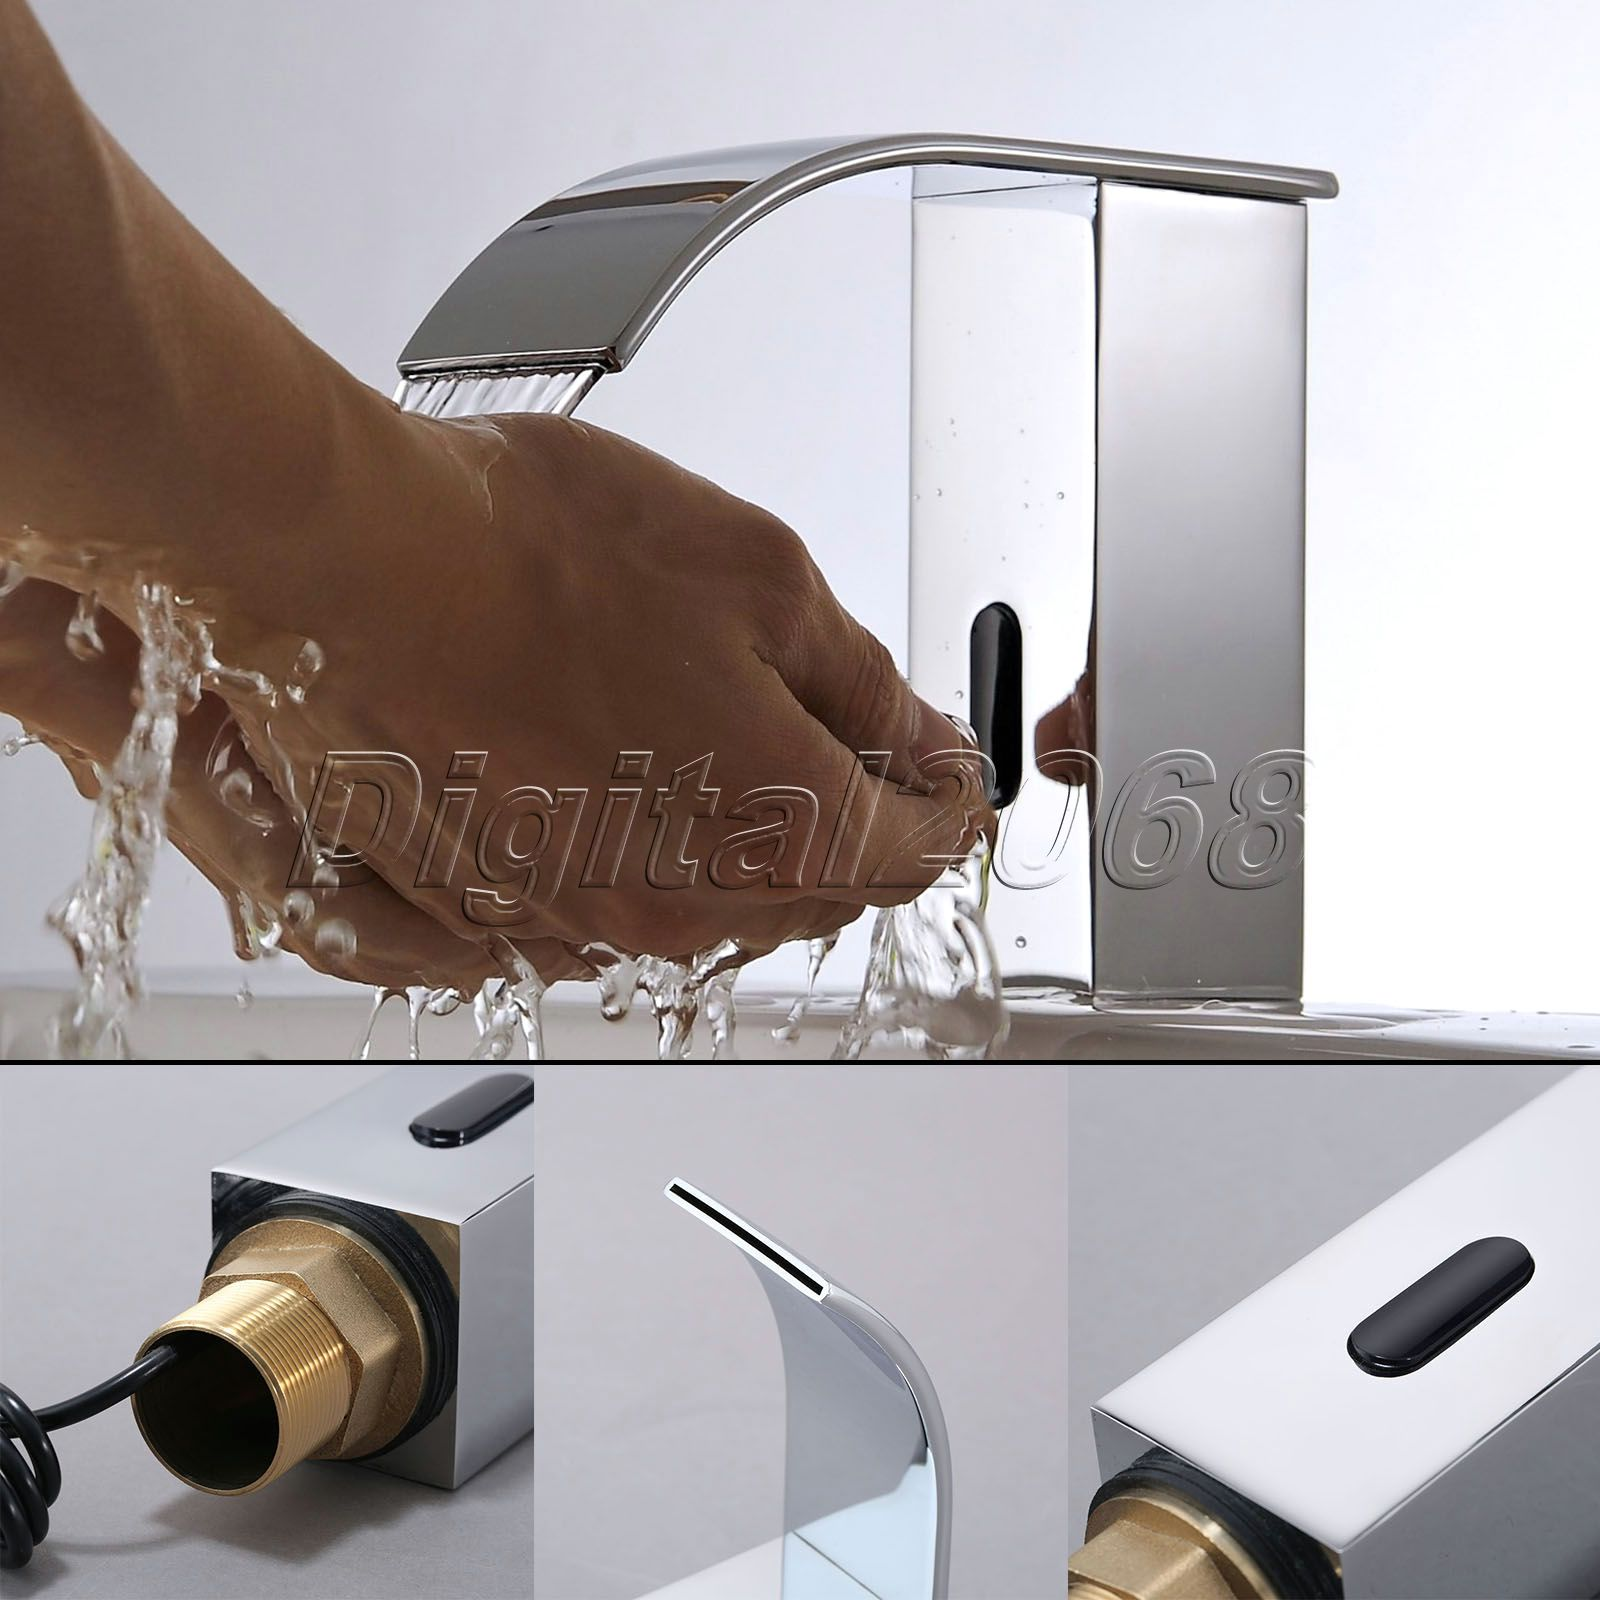 Hot Brass Deck Mounted Bathroom Faucet Automatic Hands Touch Cold Bathroom Faucet Sensor Hand Free Waterfall Chrome Mixer Tap(China (Mainland))